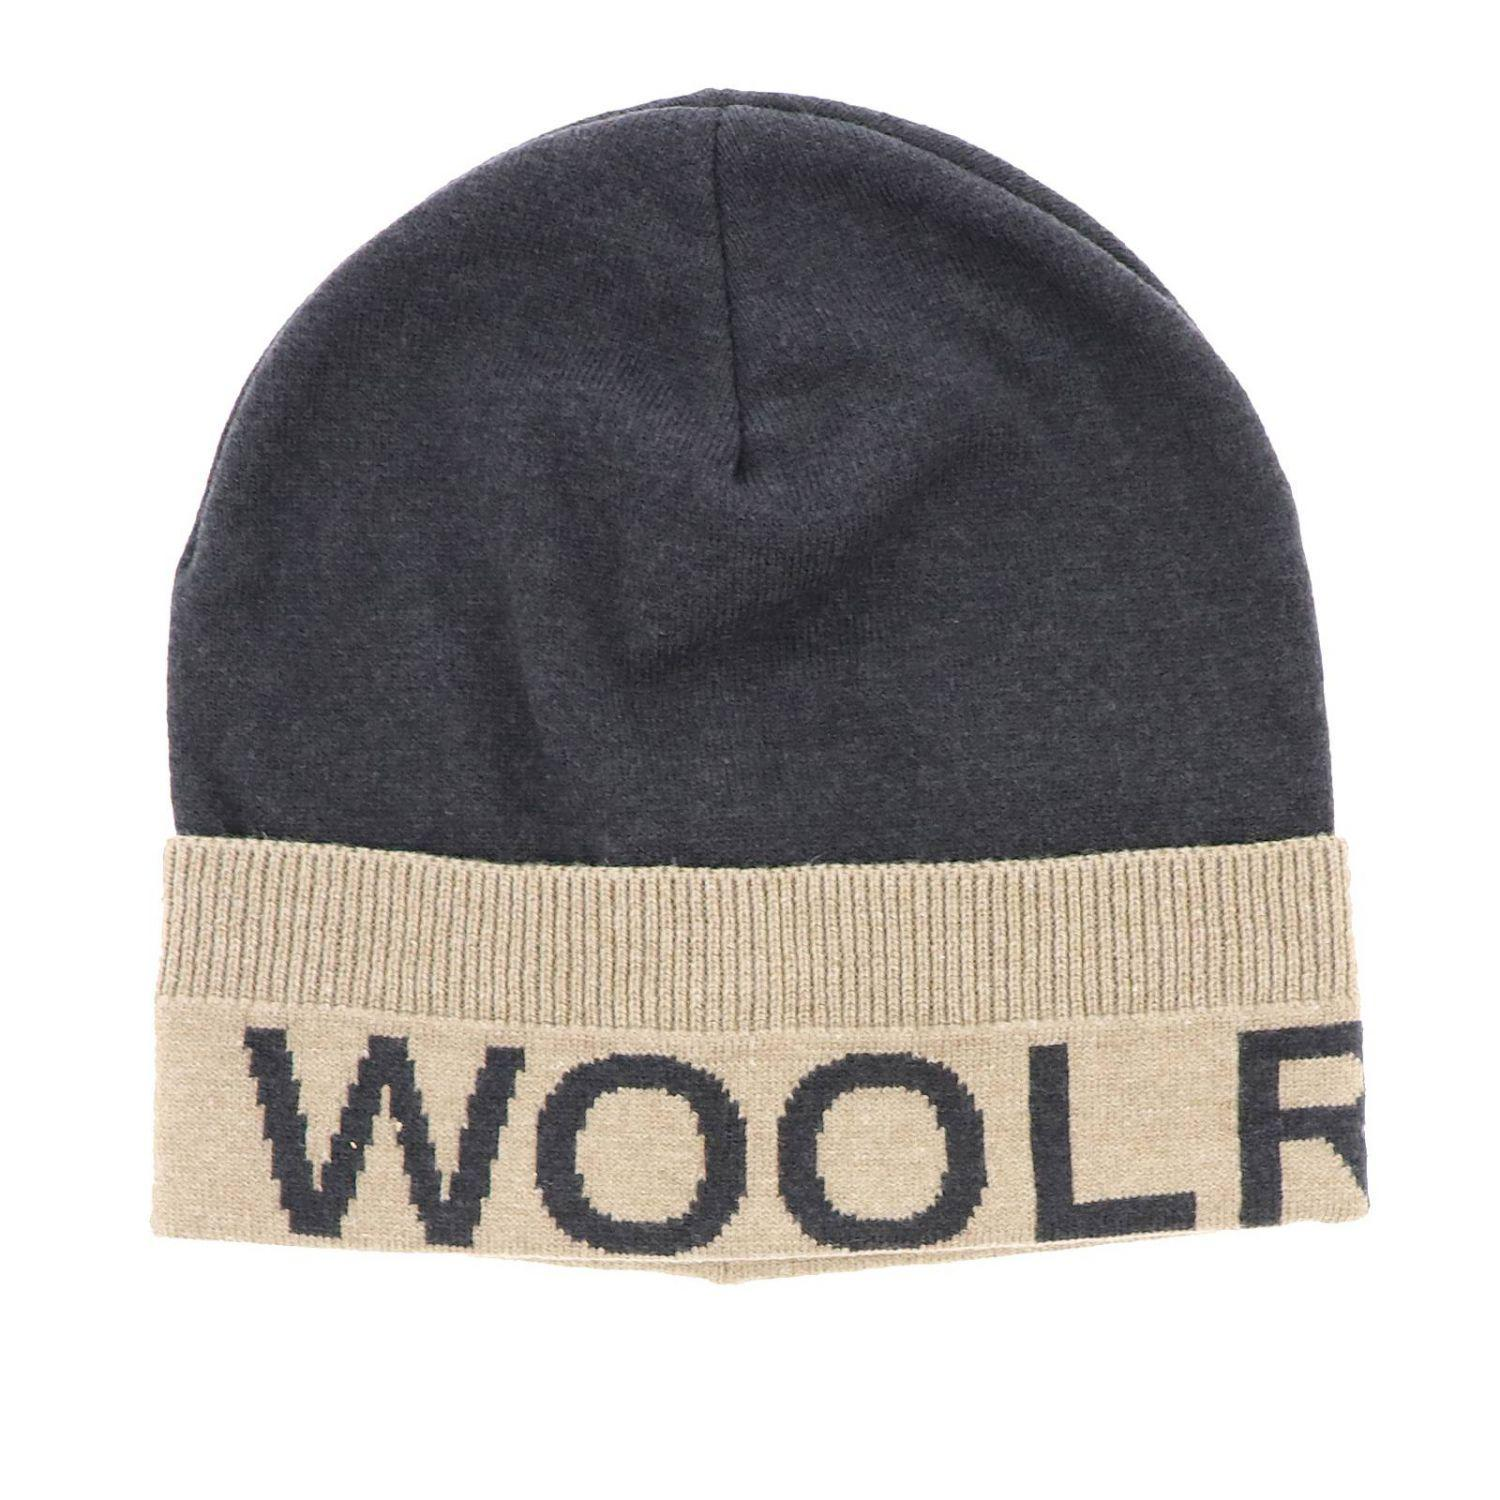 77ae39fd083c3 Woolrich Hat Men in Natural for Men - Lyst